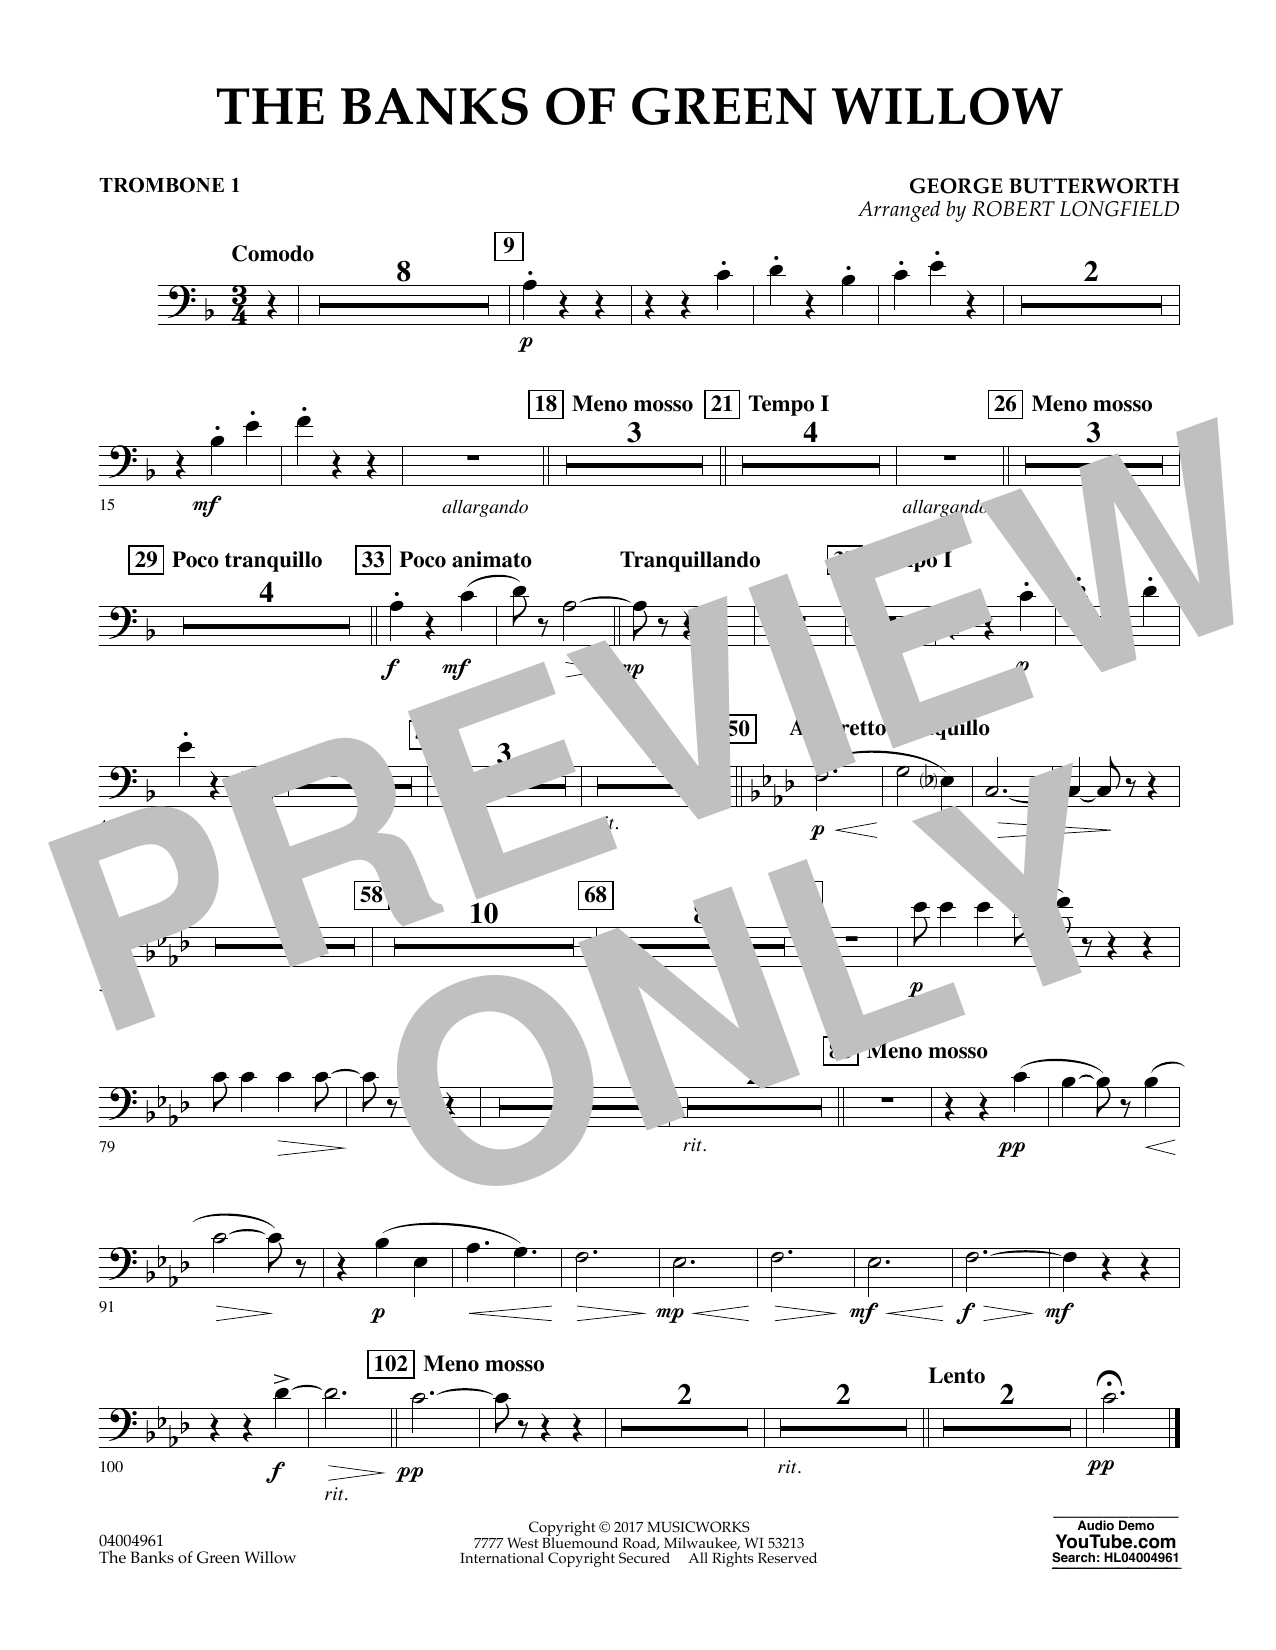 Robert Longfield The Banks of Green Willow - Trombone 1 sheet music notes and chords. Download Printable PDF.